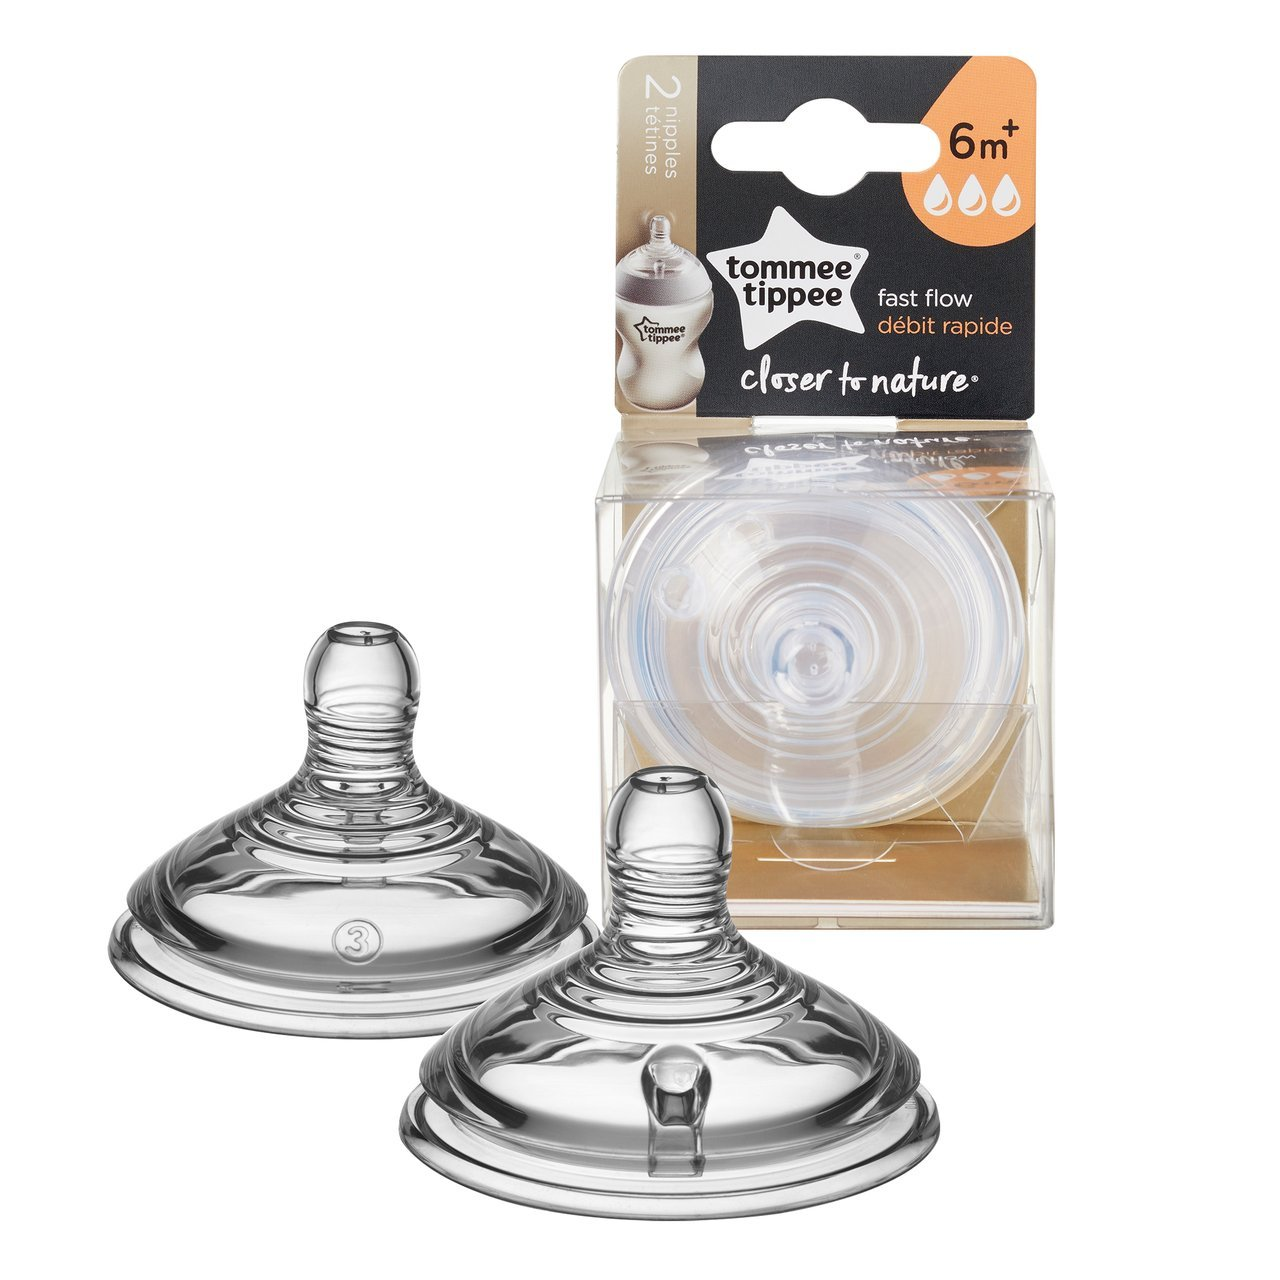 Tommee Tippee Closer to Nature Fast Flow Baby Bottle Nipples, 6+ months - 2 count